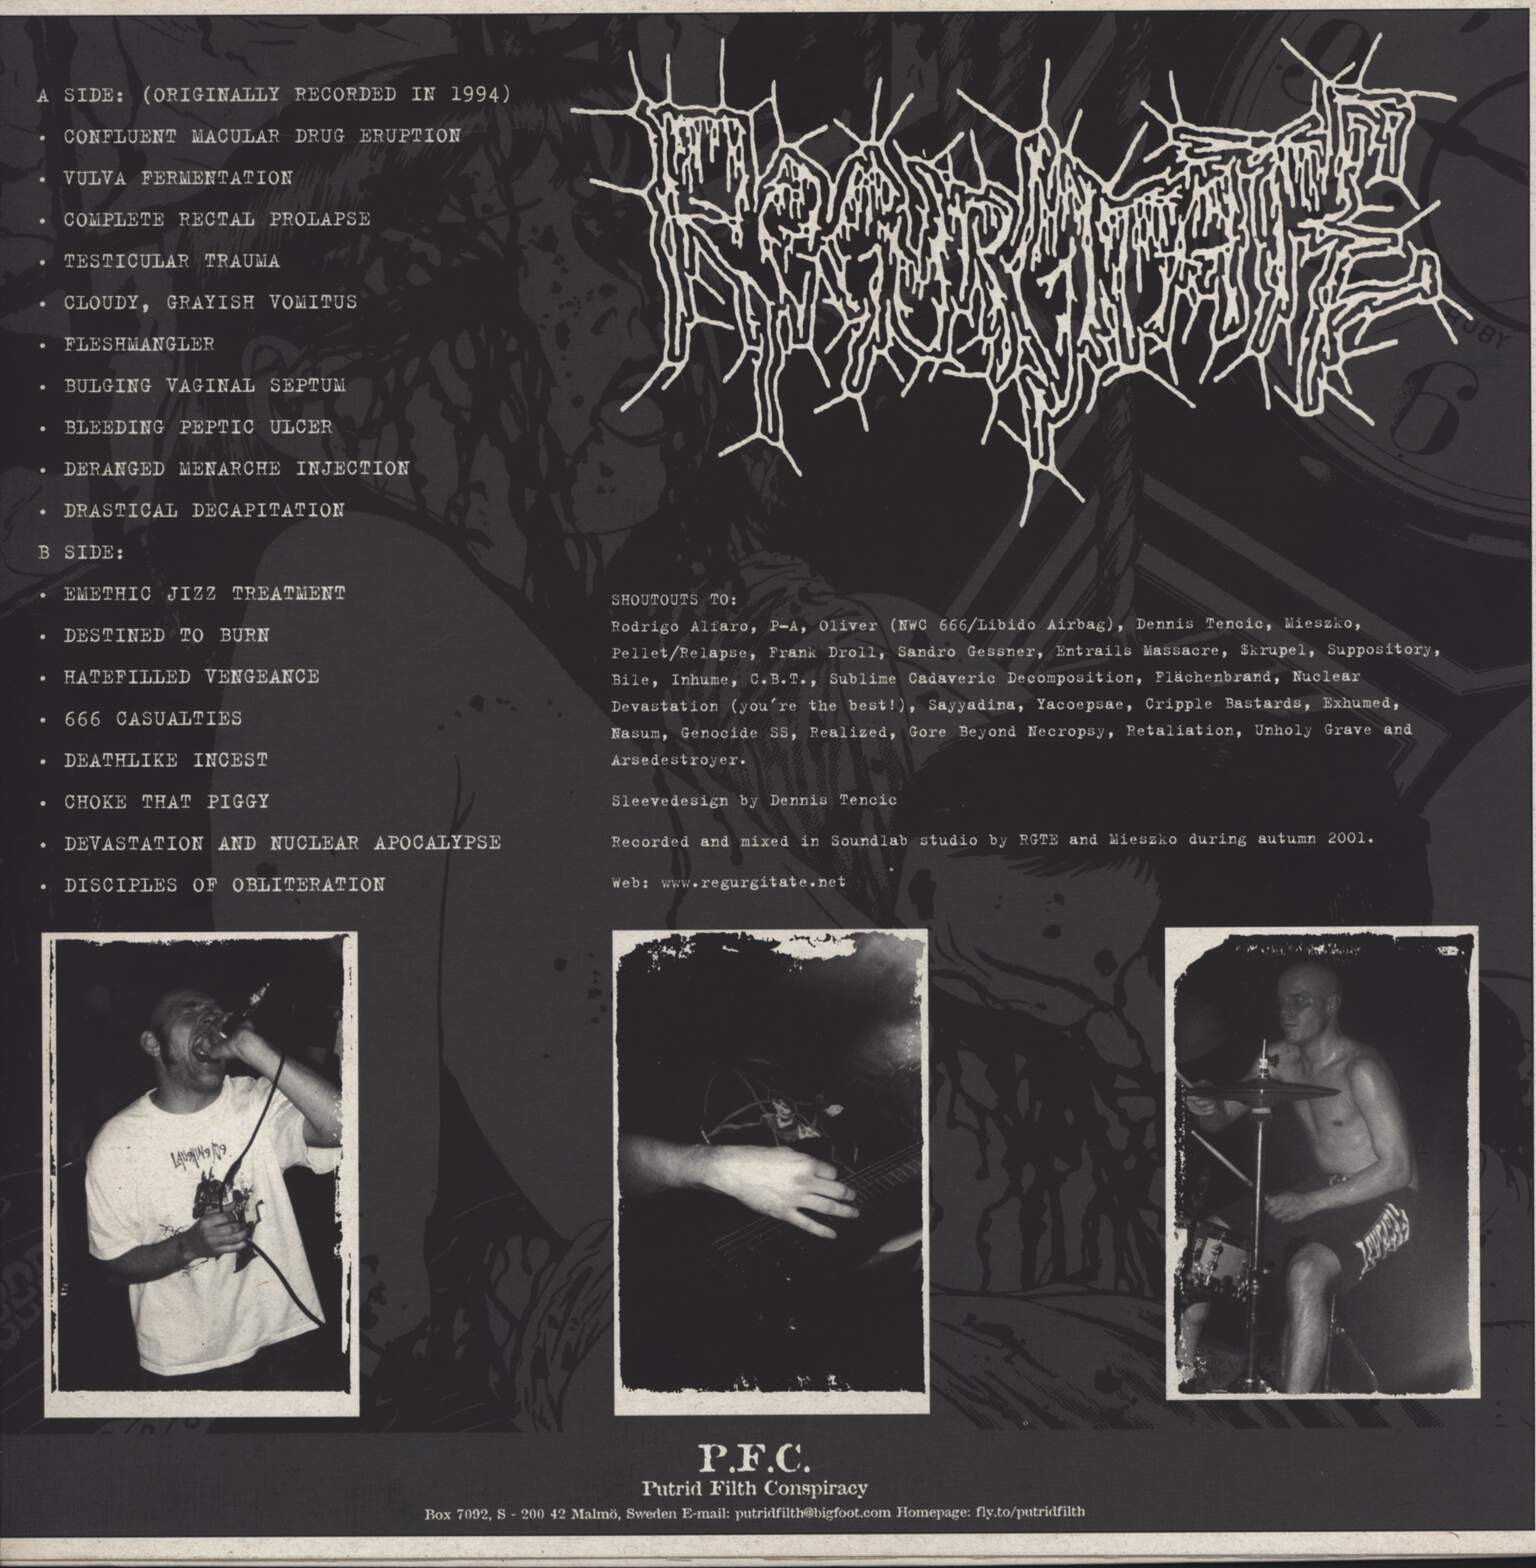 "Regurgitate: Hatefilled Vengeance, 12"" Maxi Single (Vinyl)"